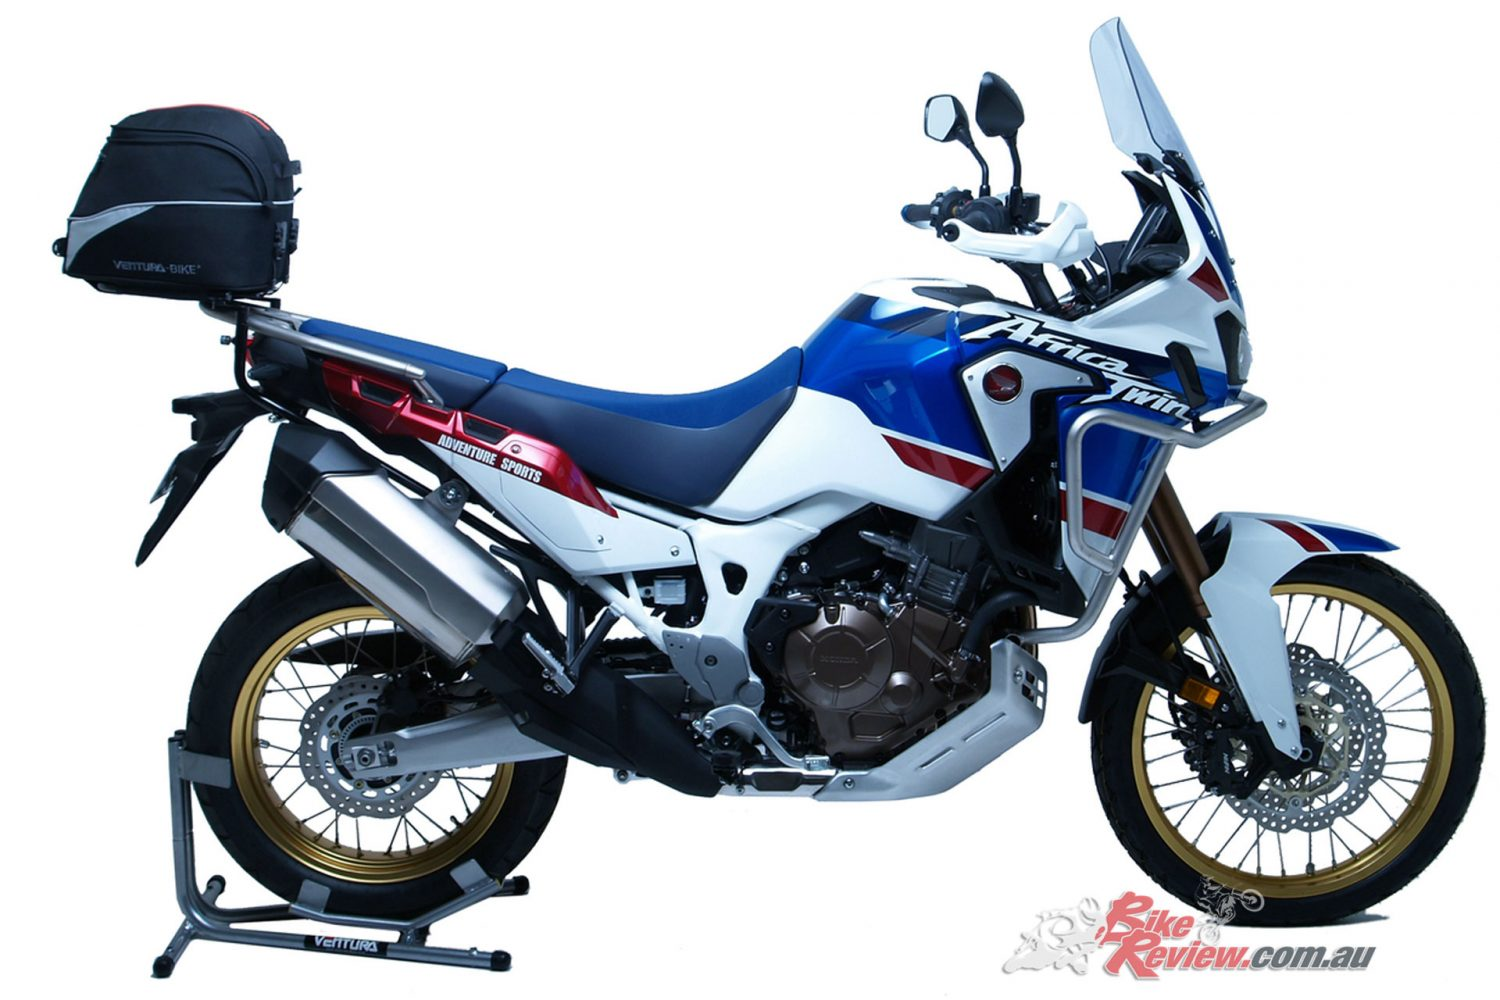 Ventura luggage solutions for the Africa Twin available now!